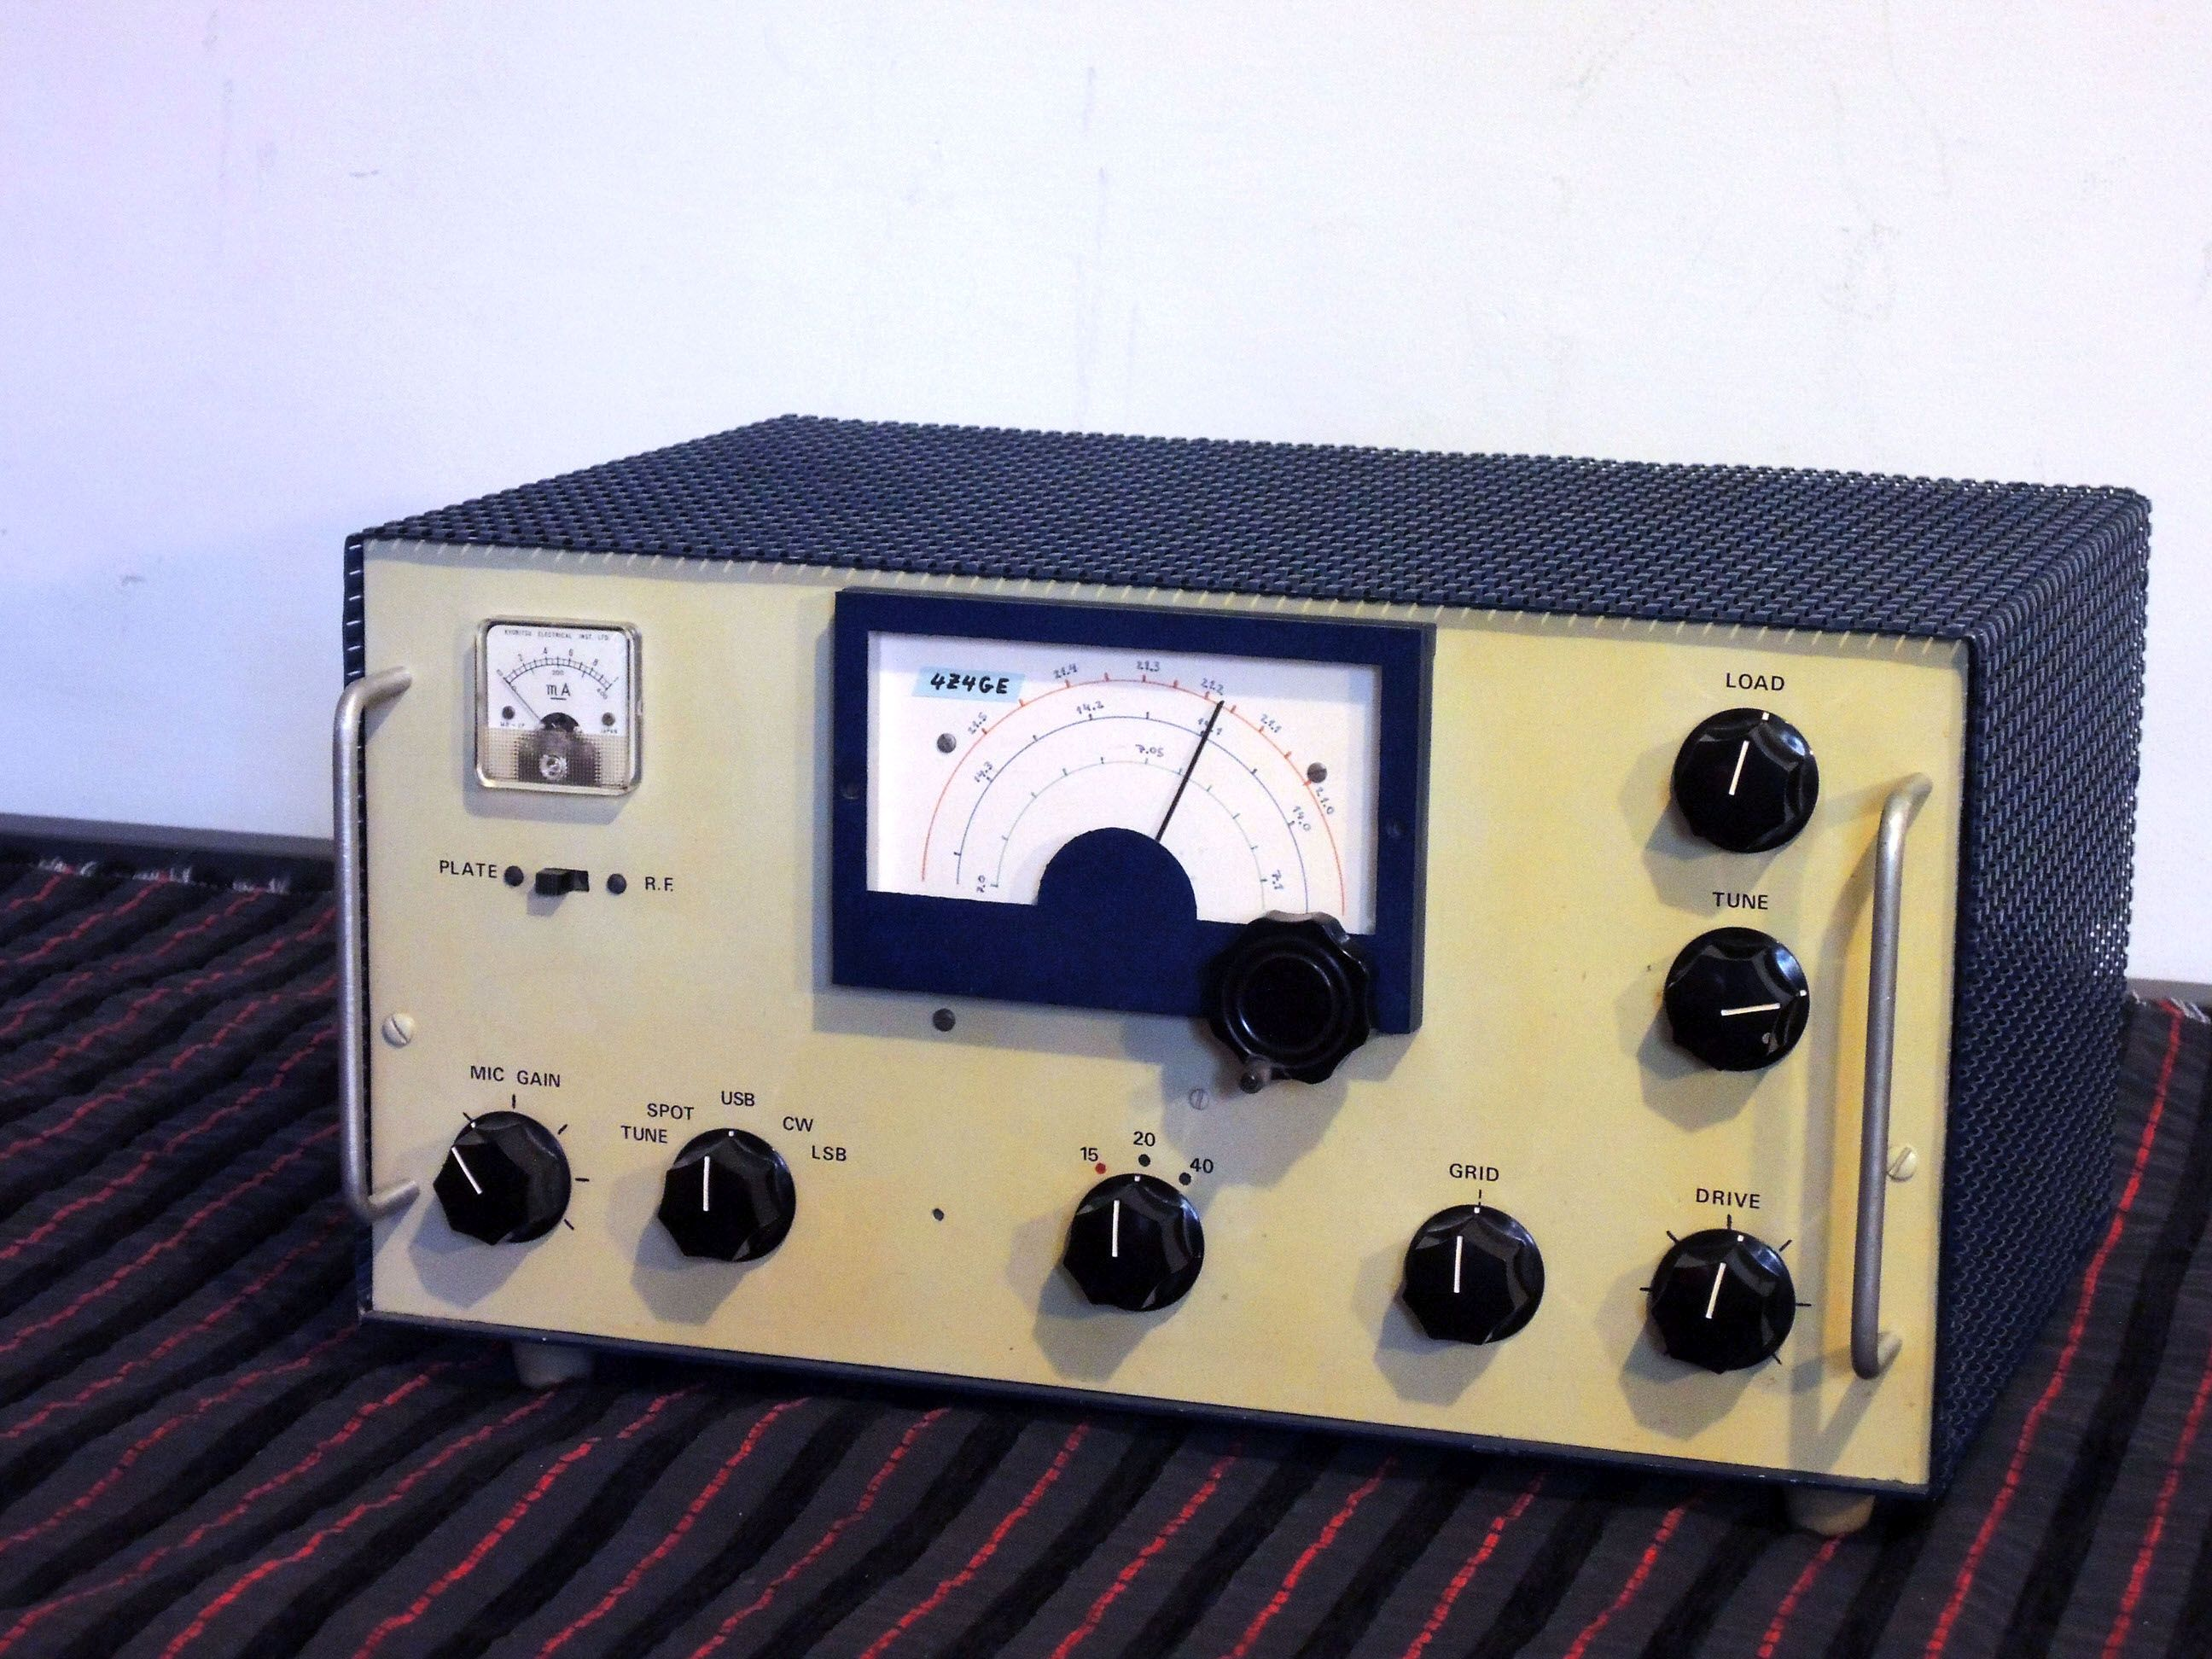 Design and construction of a homebrew single sideband amateur radio